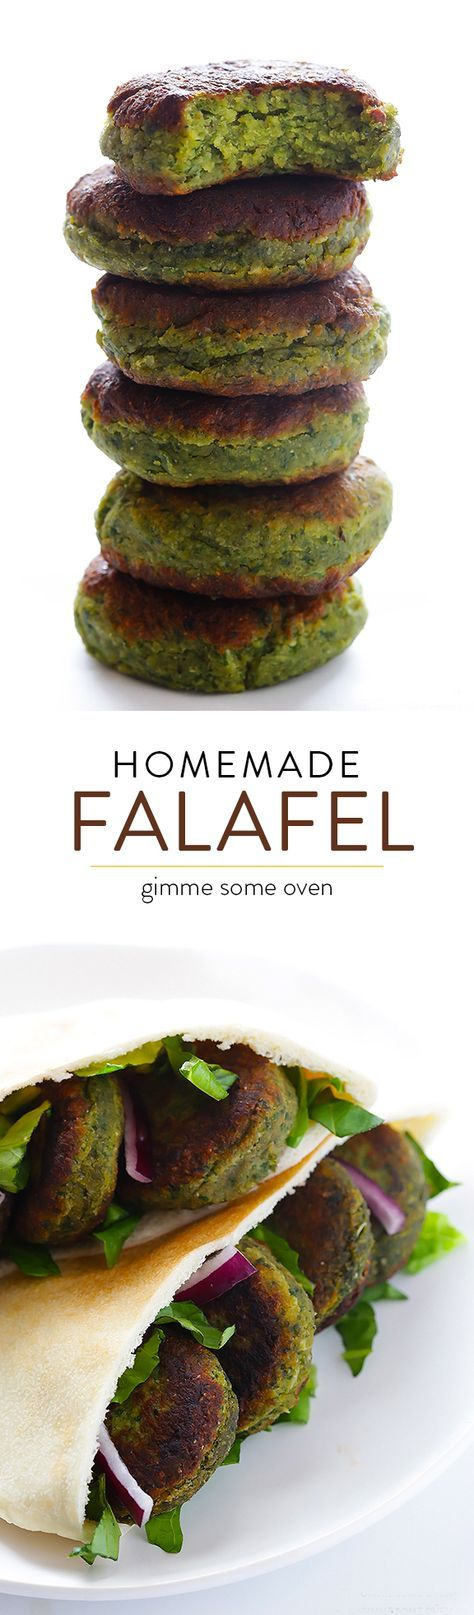 This falafel recipe is full of fresh ingredients, easy to make, and